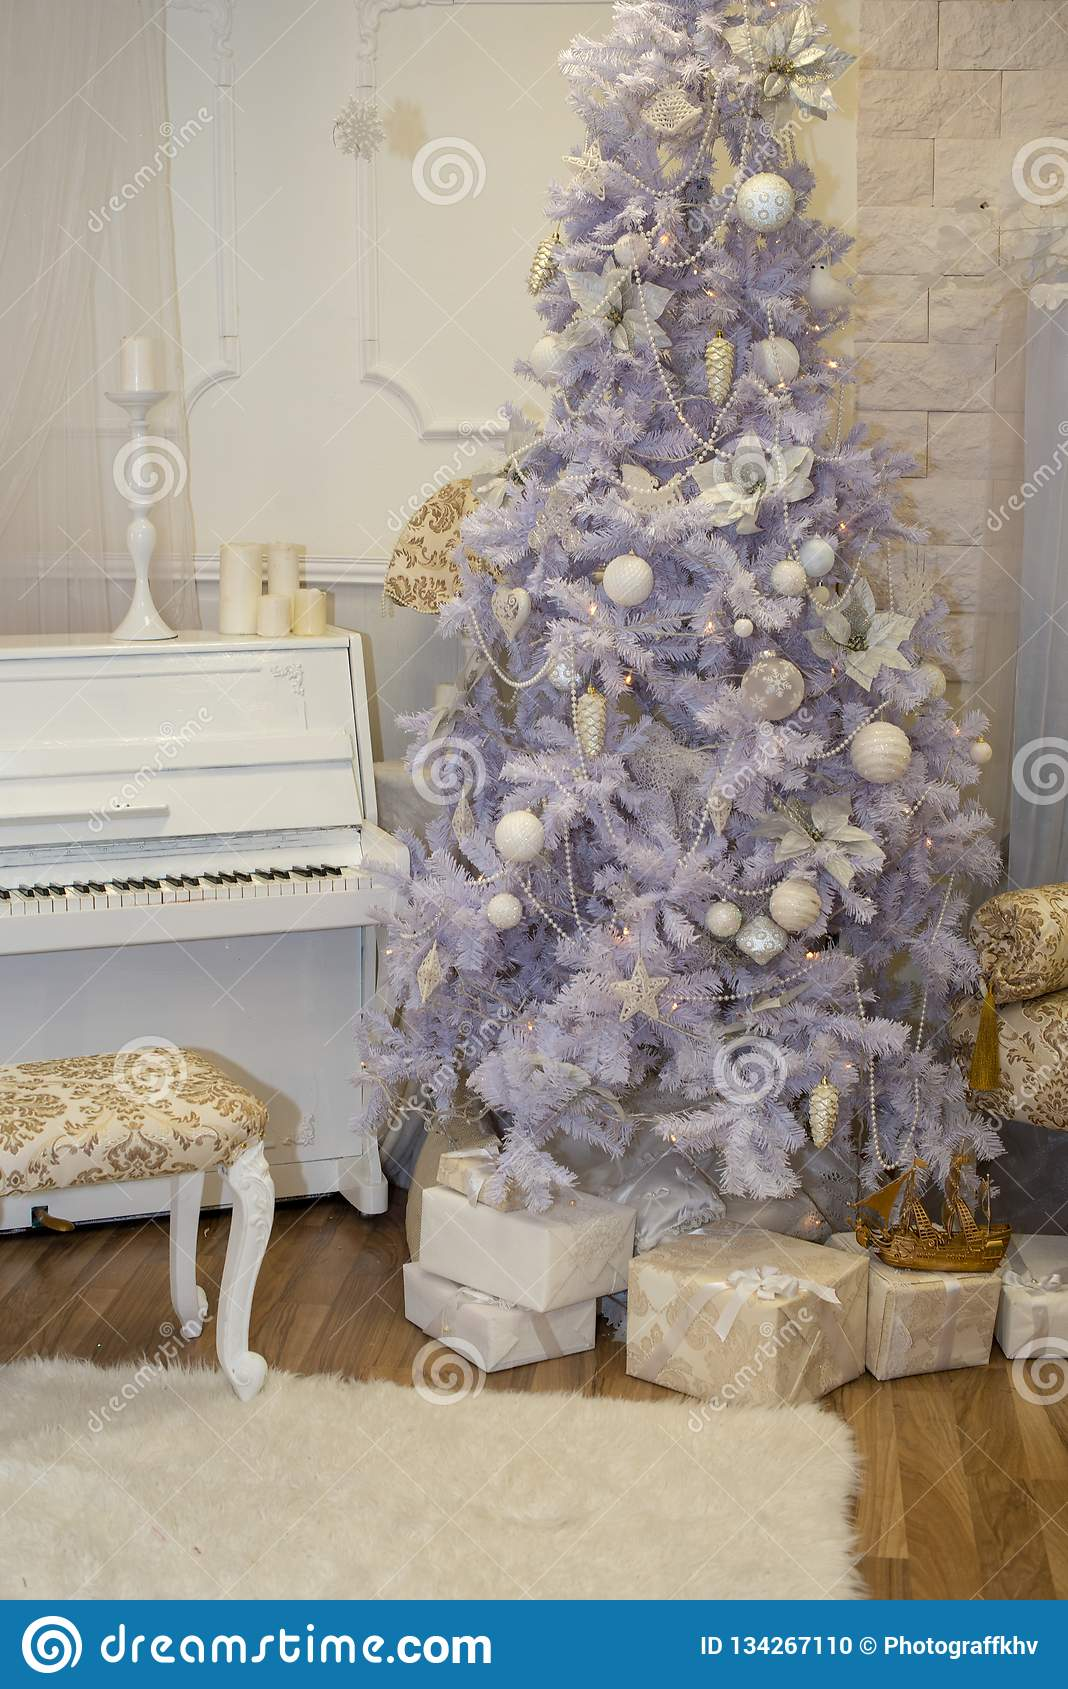 White Christmas Tree Decorated With Silver And Pink Ornaments At The Piano Background Winter Scene New Year Decoration Xmas Stock Photo Image Of Decorative Decor 134267110